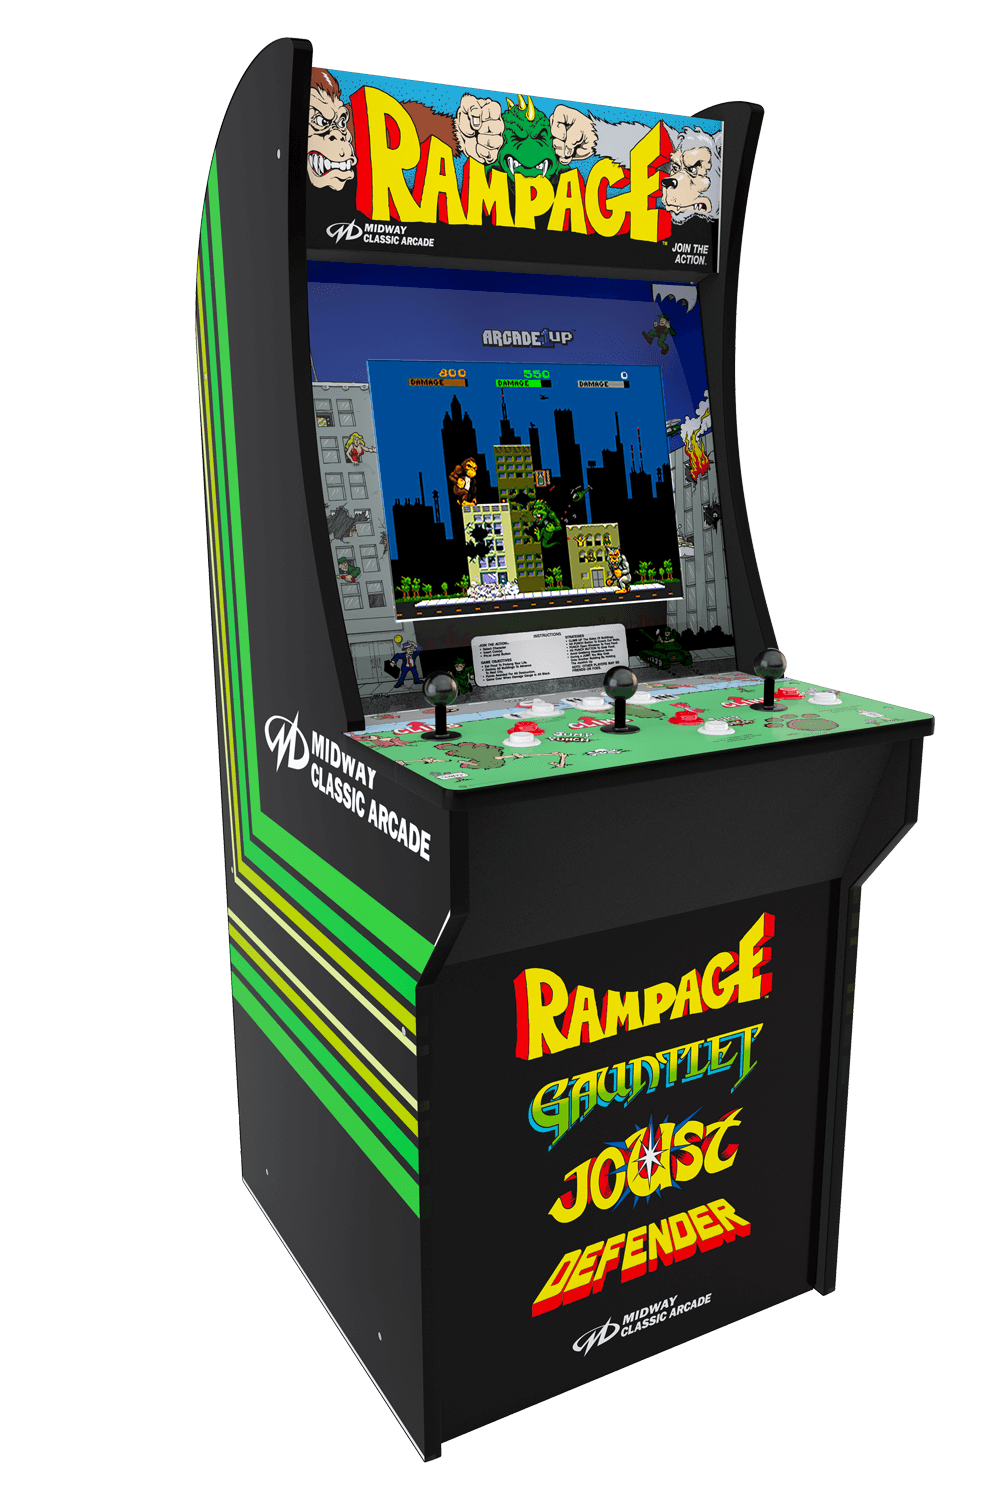 OFFICIAL Arcade1UP Rampage Cabinet - NEW IN BOX